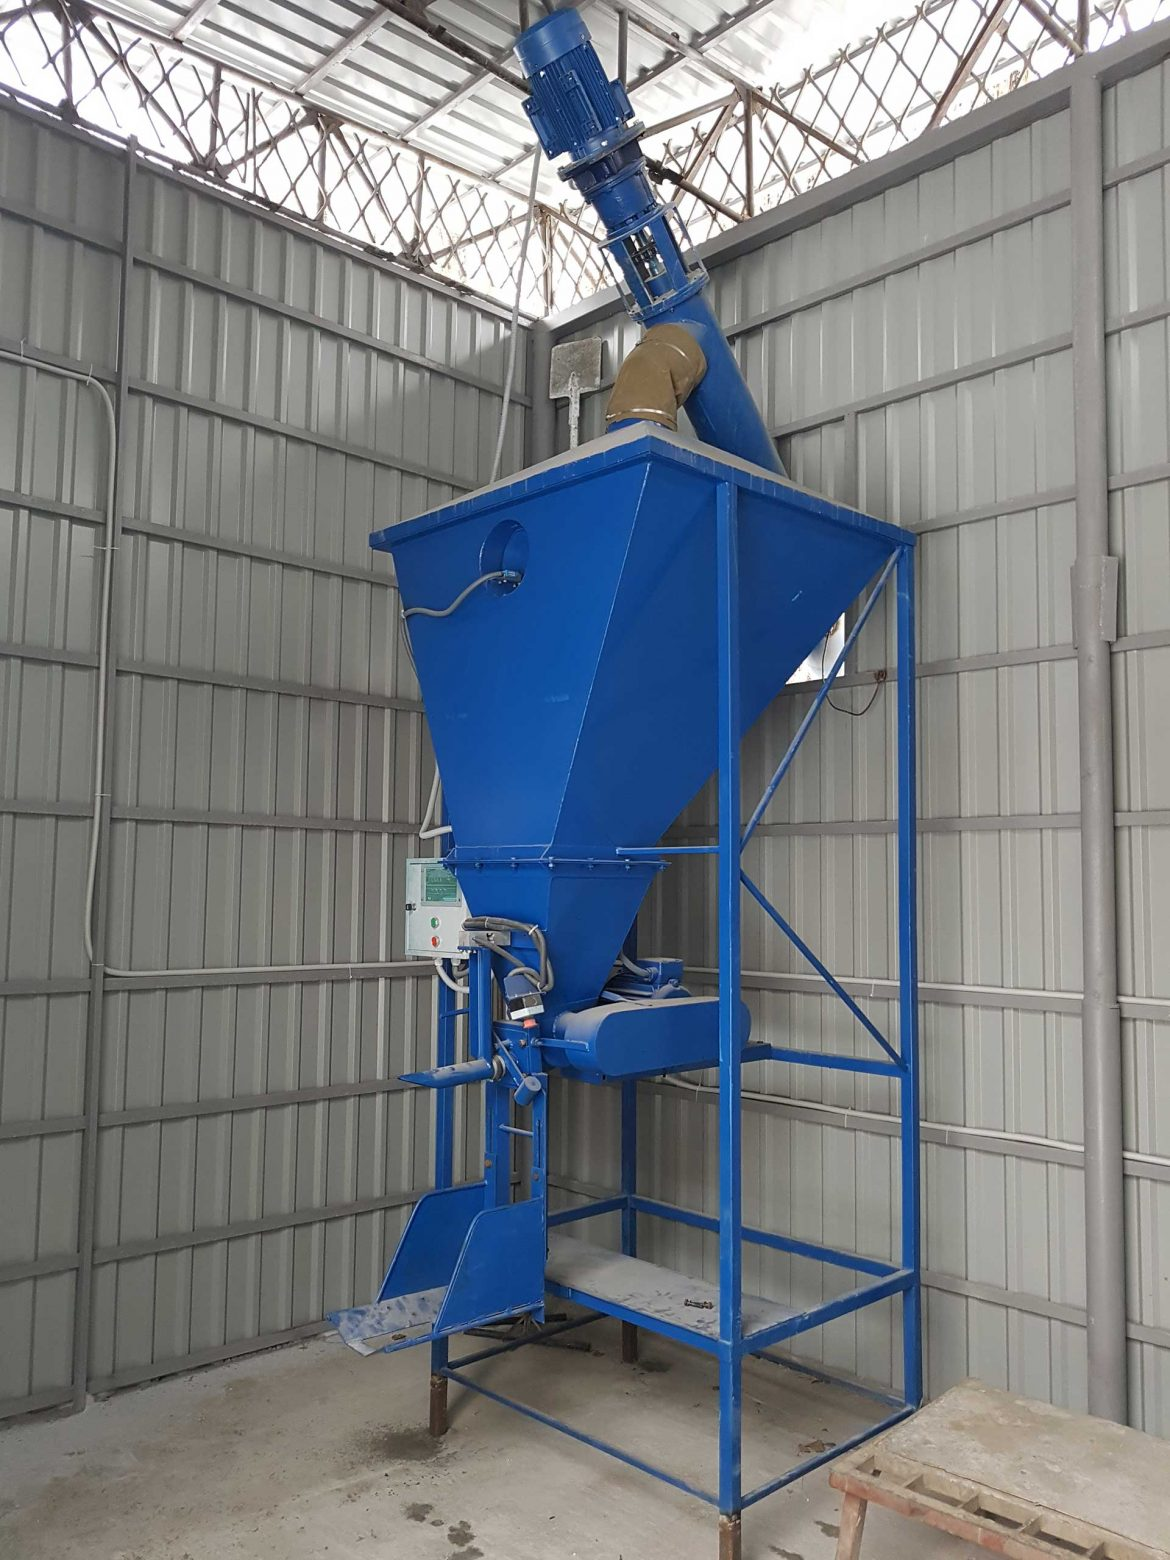 NPC KTS produces equipment for packing bulk materials